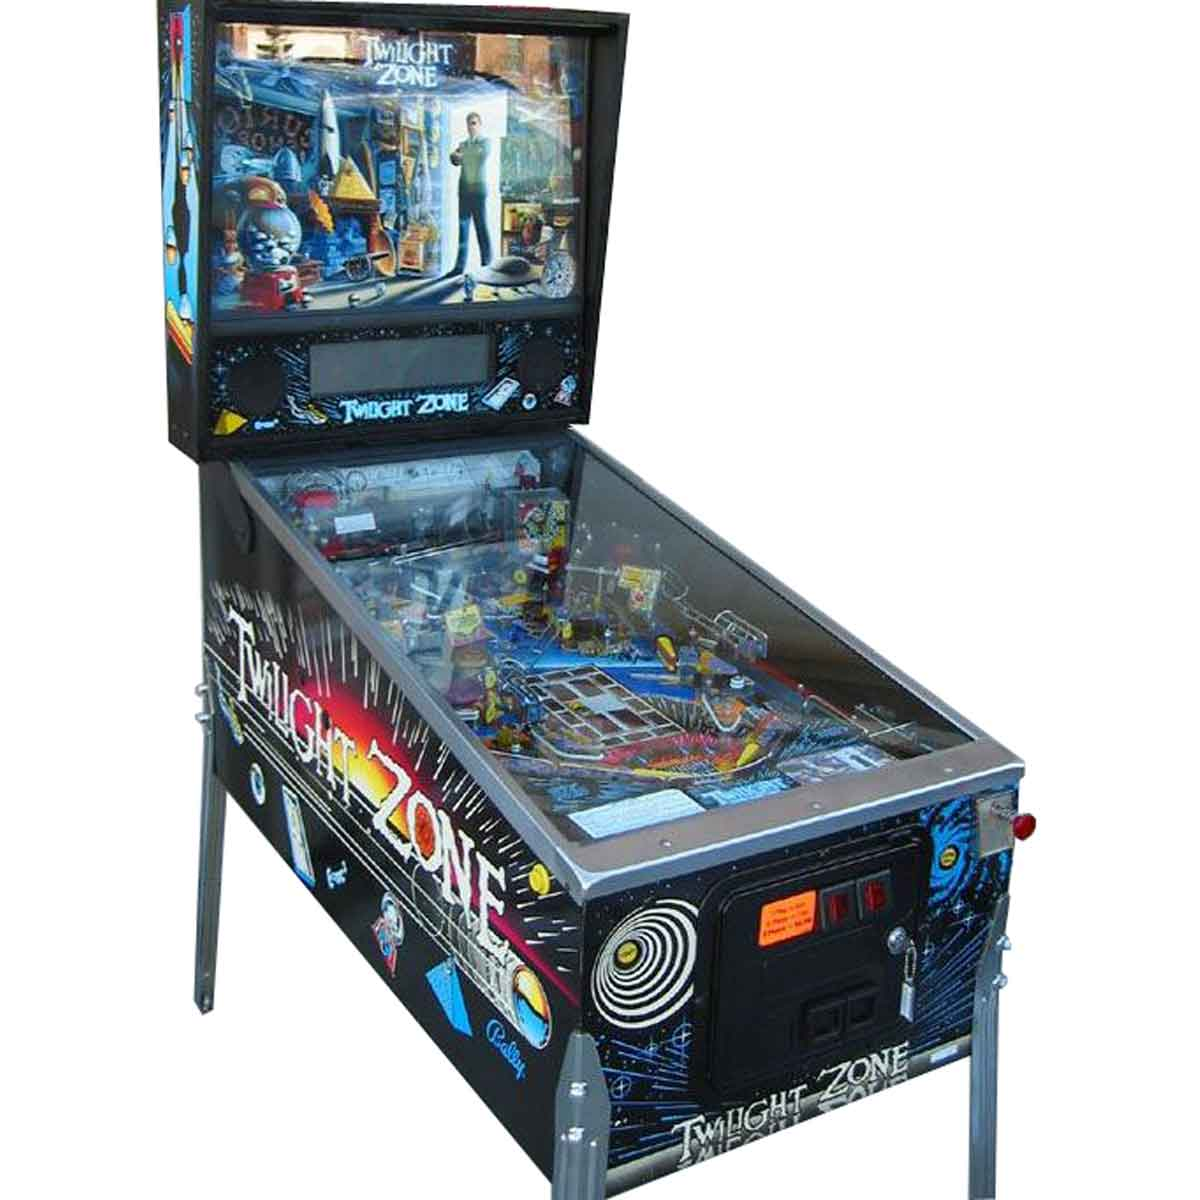 Twilight Zone Pinball Machine Hire